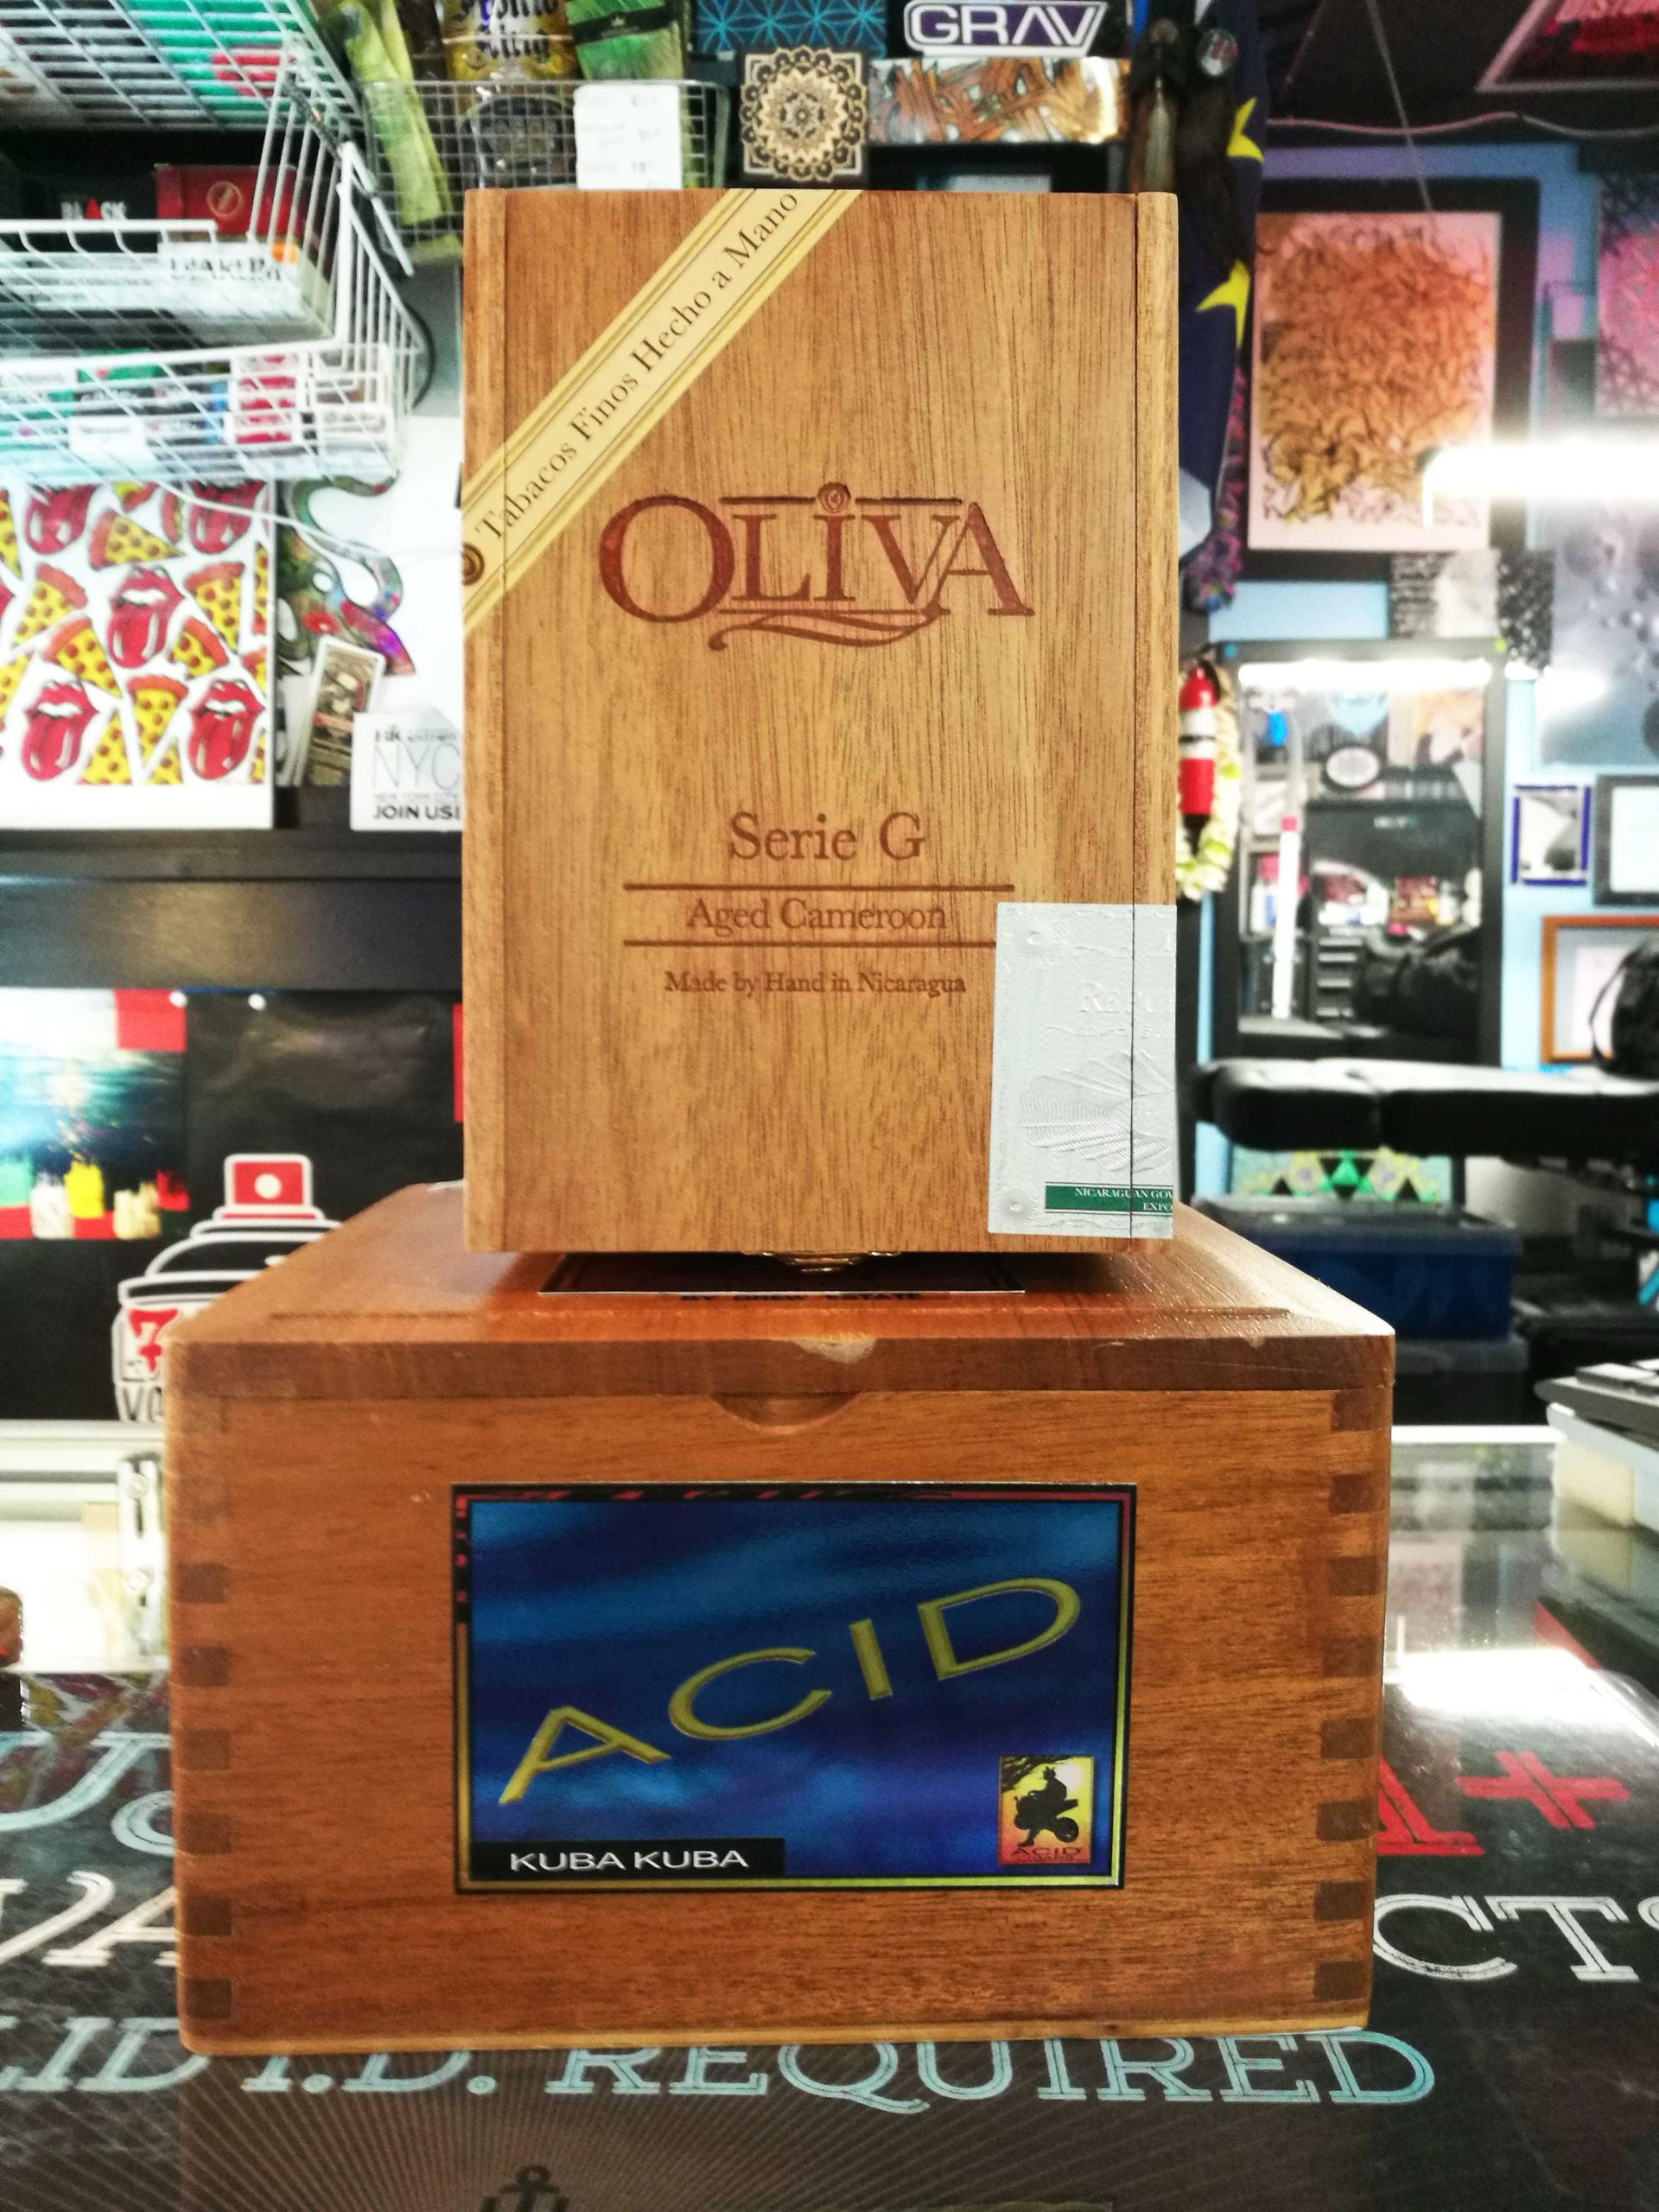 Olivia and ACID cigar boxes